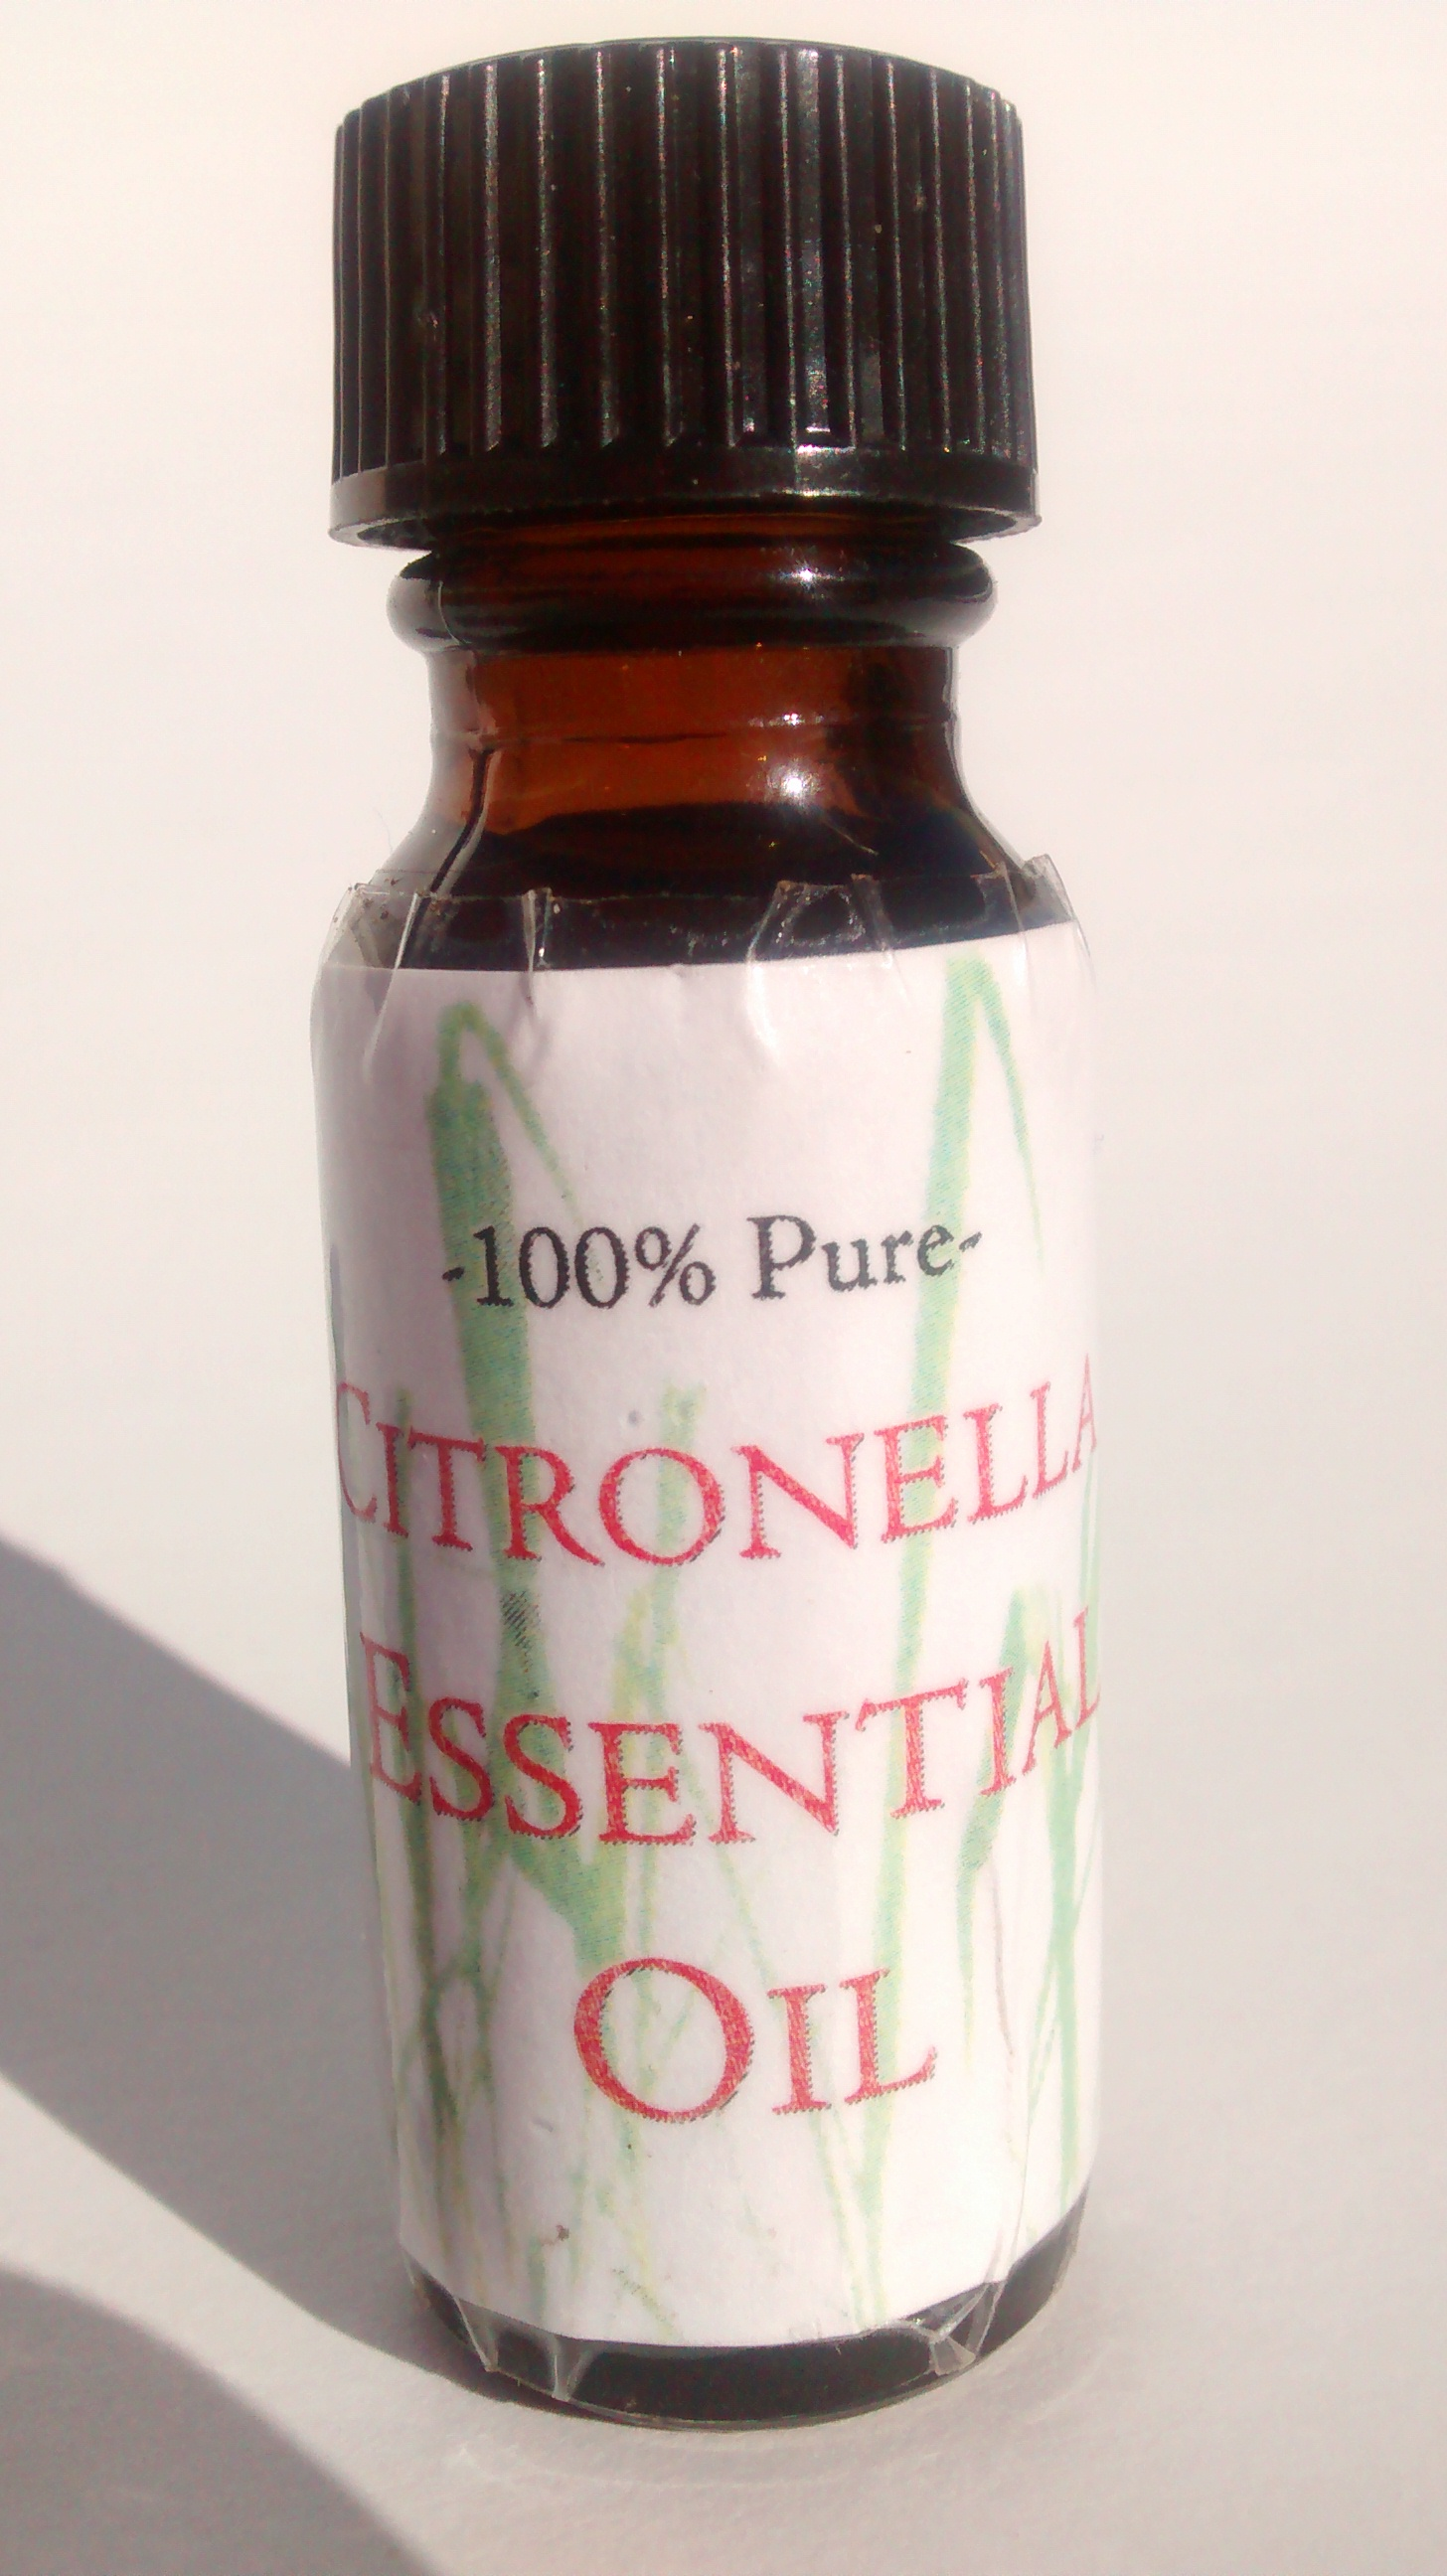 100% Pure Citronella Essential Oil · Johnson Pure Soap · Online Store Powered by Storenvy